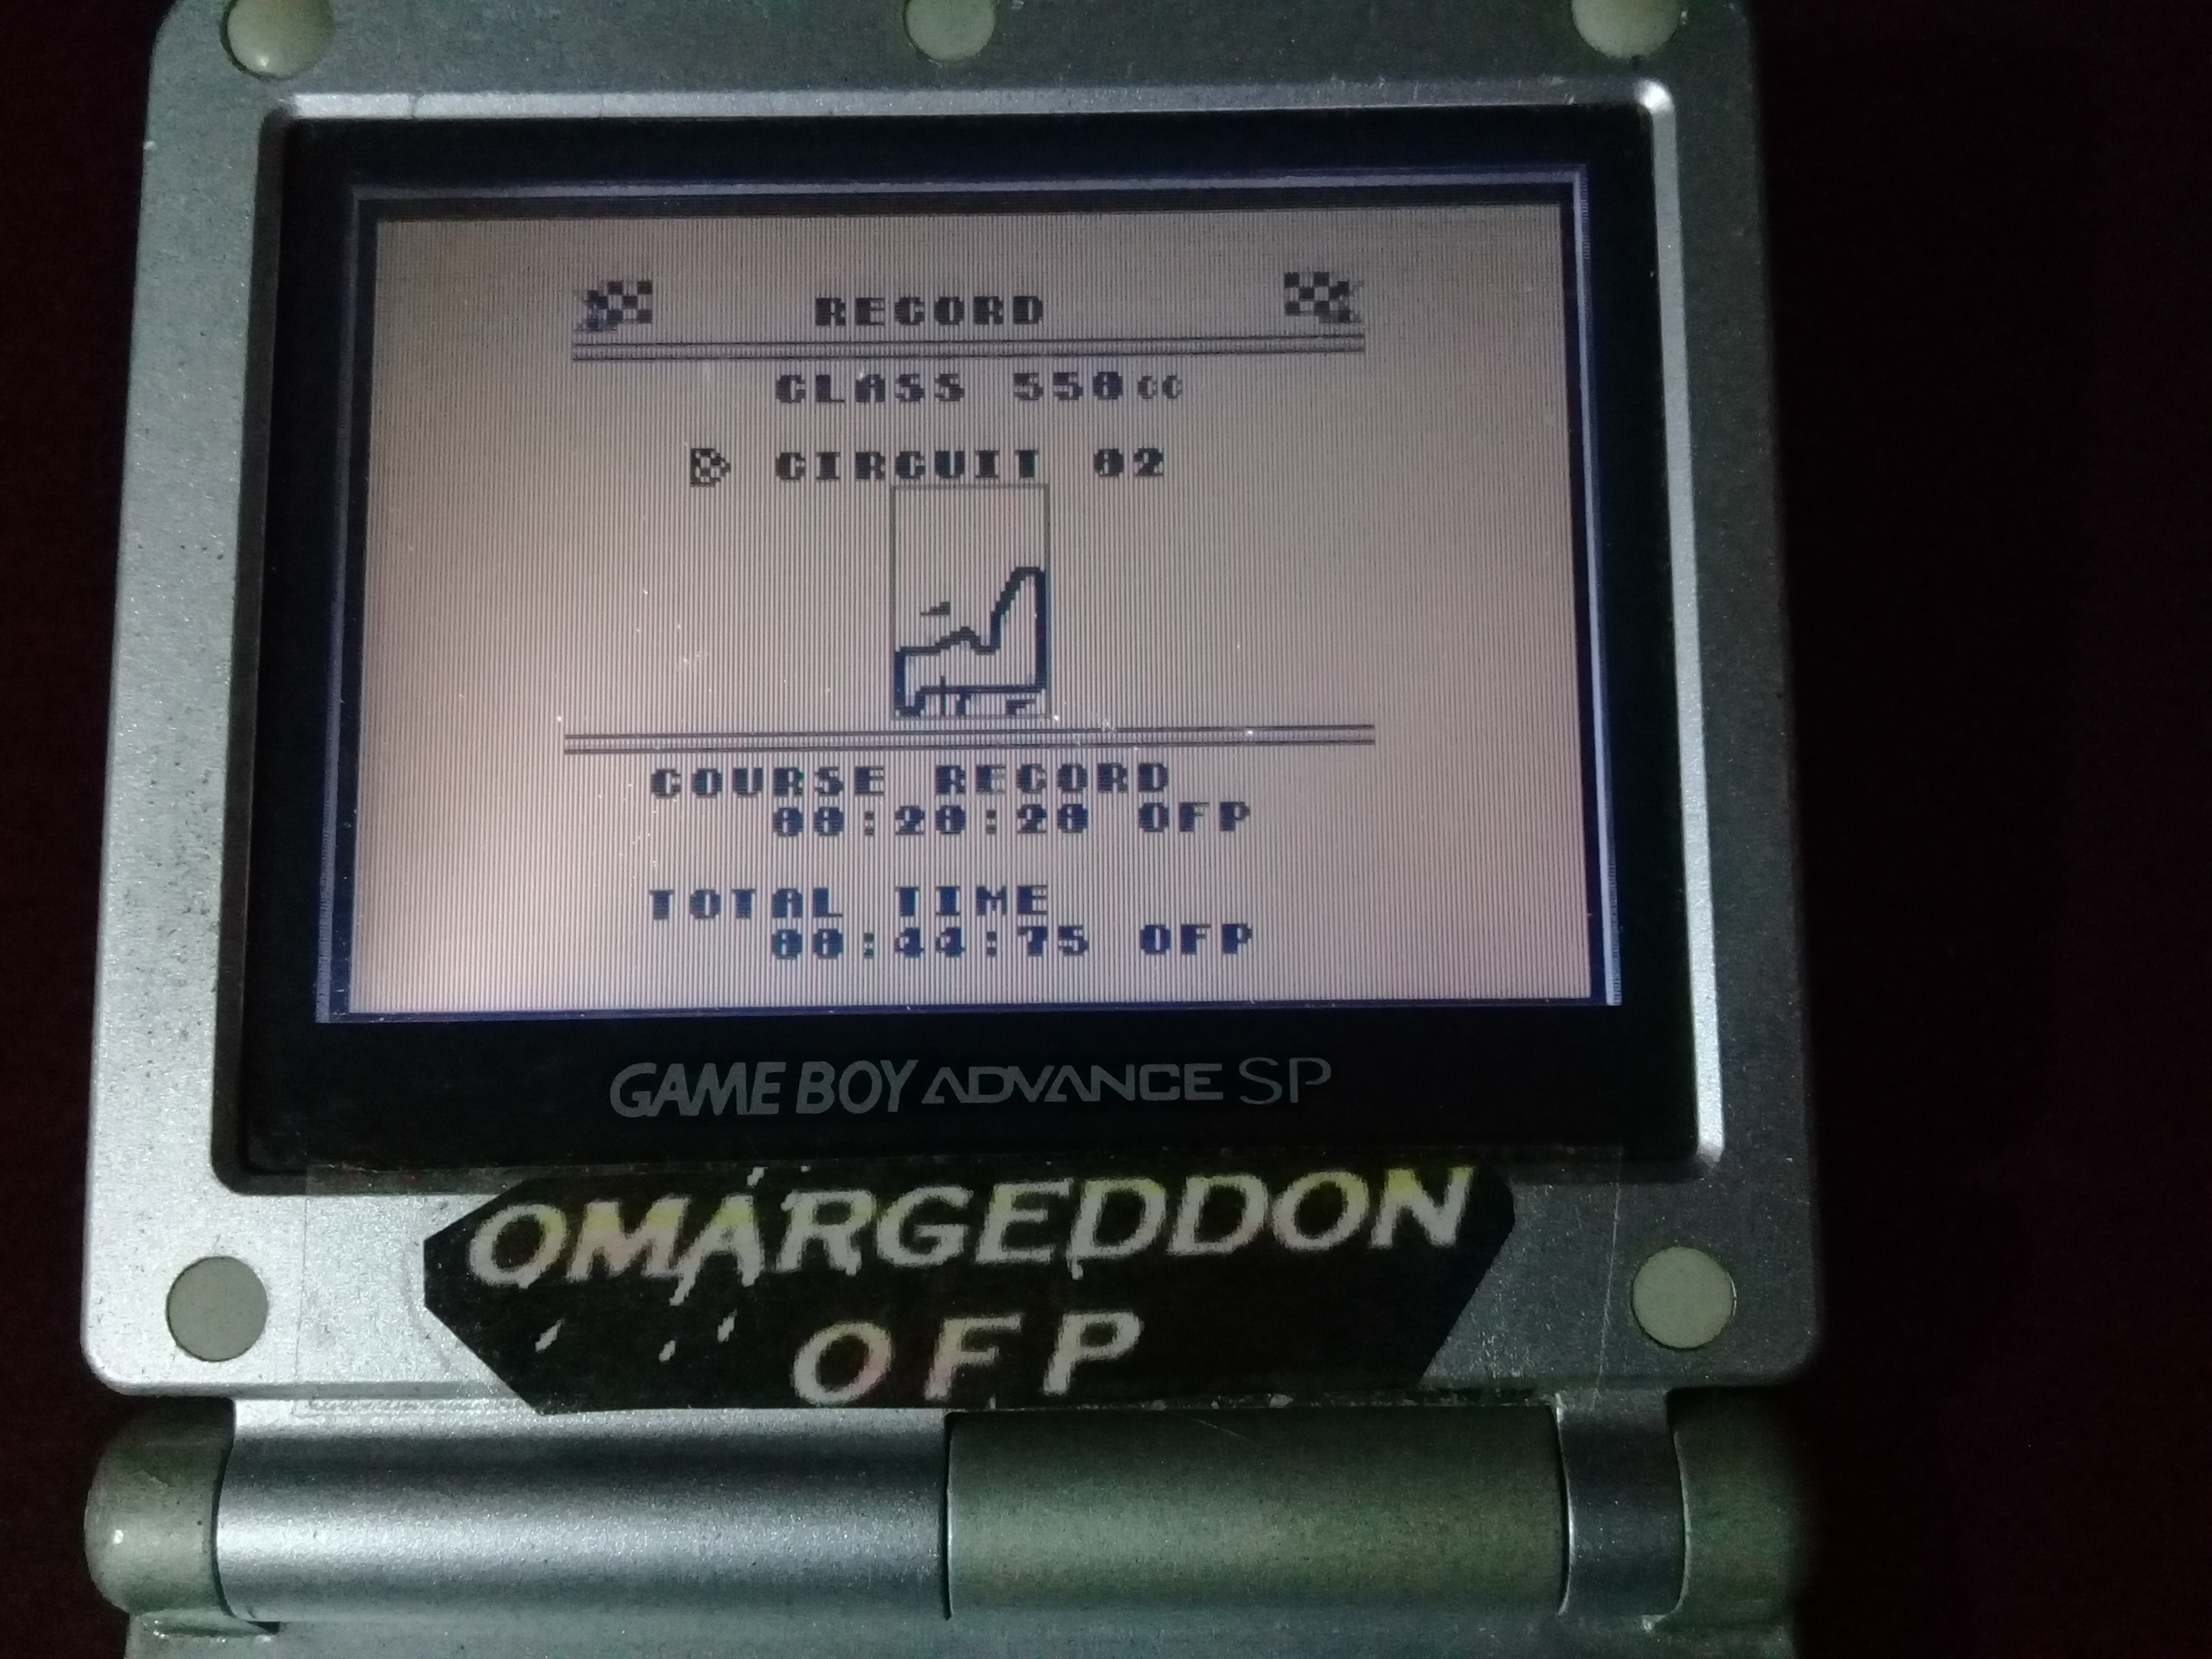 omargeddon: Wave Race: Circuit 2: Hawaii [550cc][Total Time] (Game Boy) 0:00:44.75 points on 2019-04-16 14:36:53